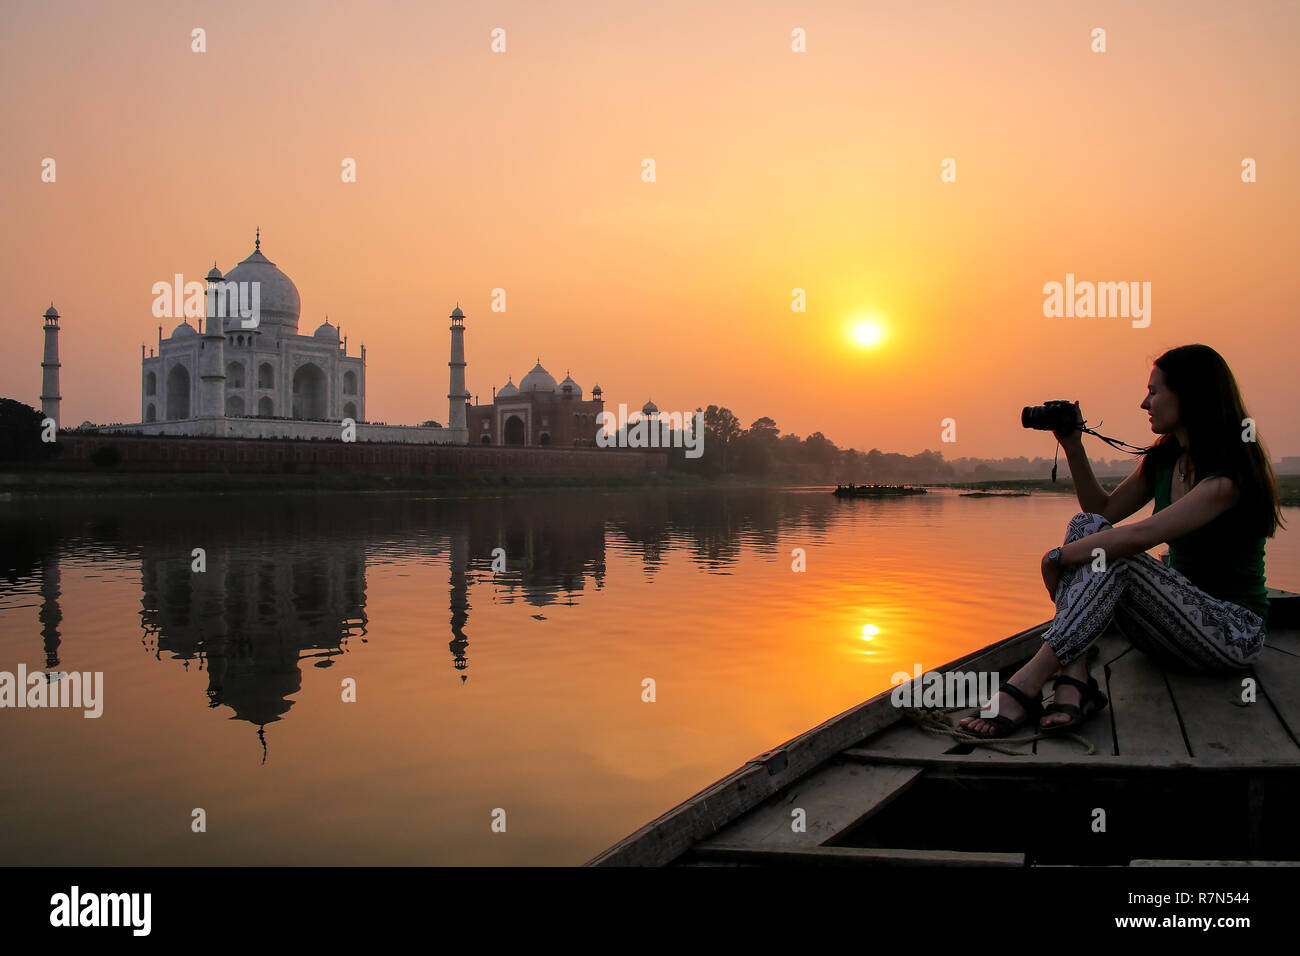 Woman watching sunset over Taj Mahal from a boat, Agra, India. It was build in 1632 by Emperor Shah Jahan as a memorial for his second wife Mumtaz Mah Stock Photo